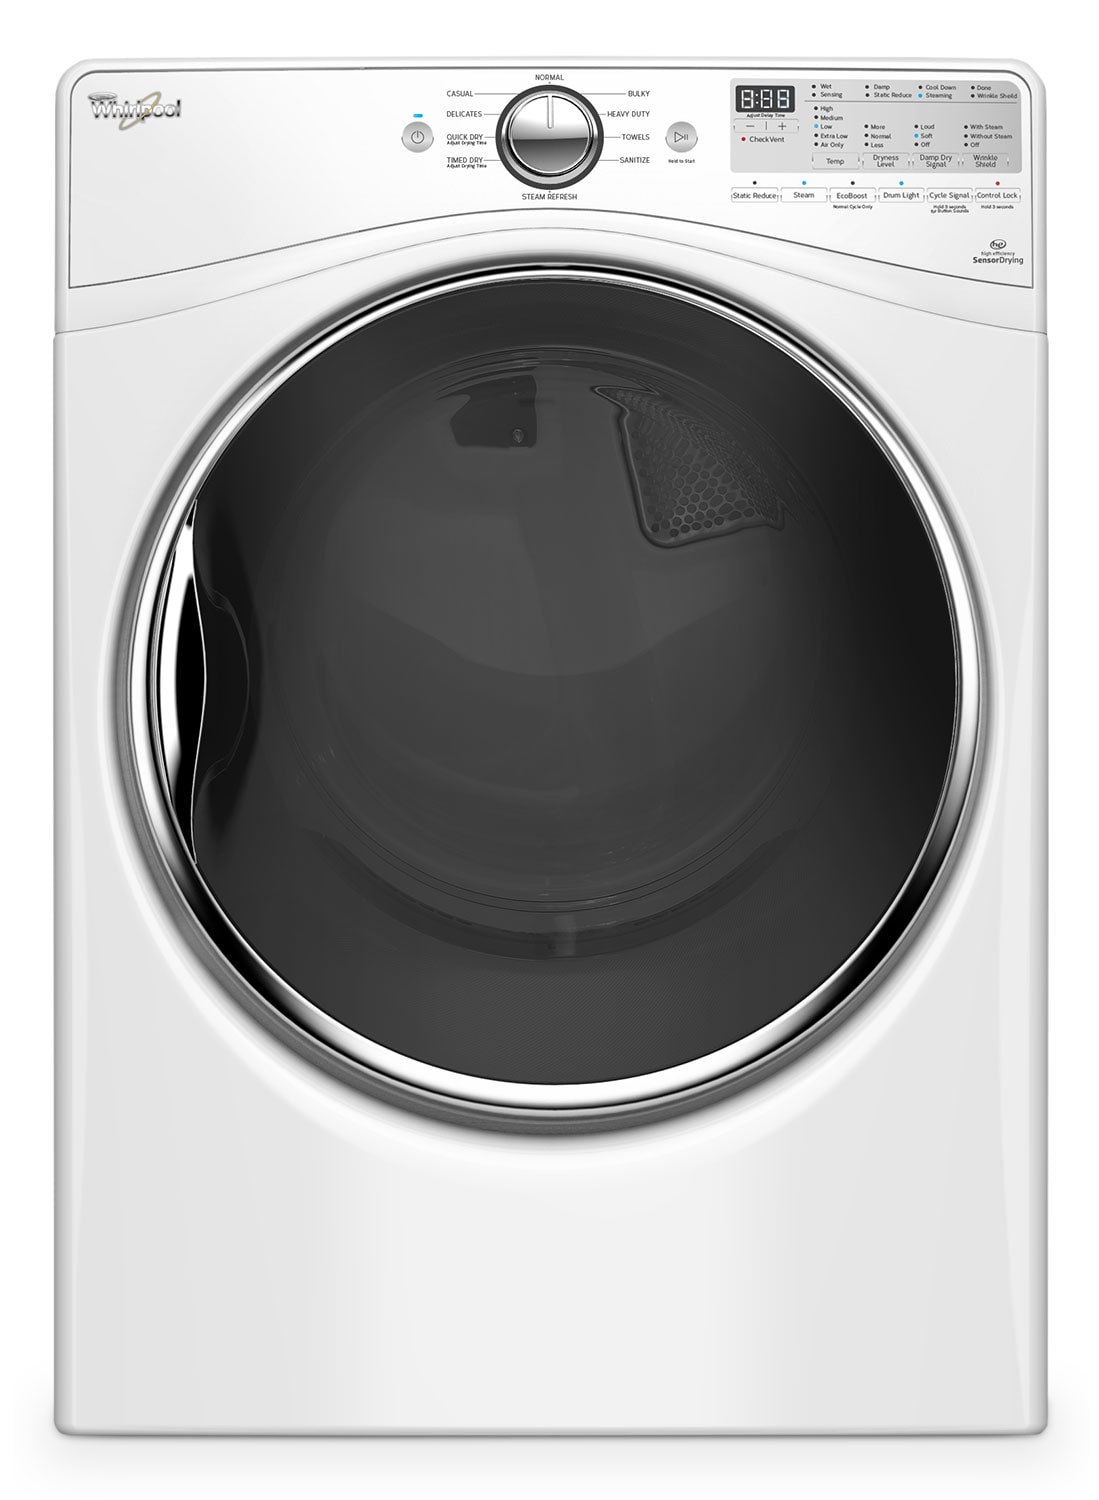 Whirpool White Gas Dryer (7.4 Cu. Ft.) - WGD92HEFW